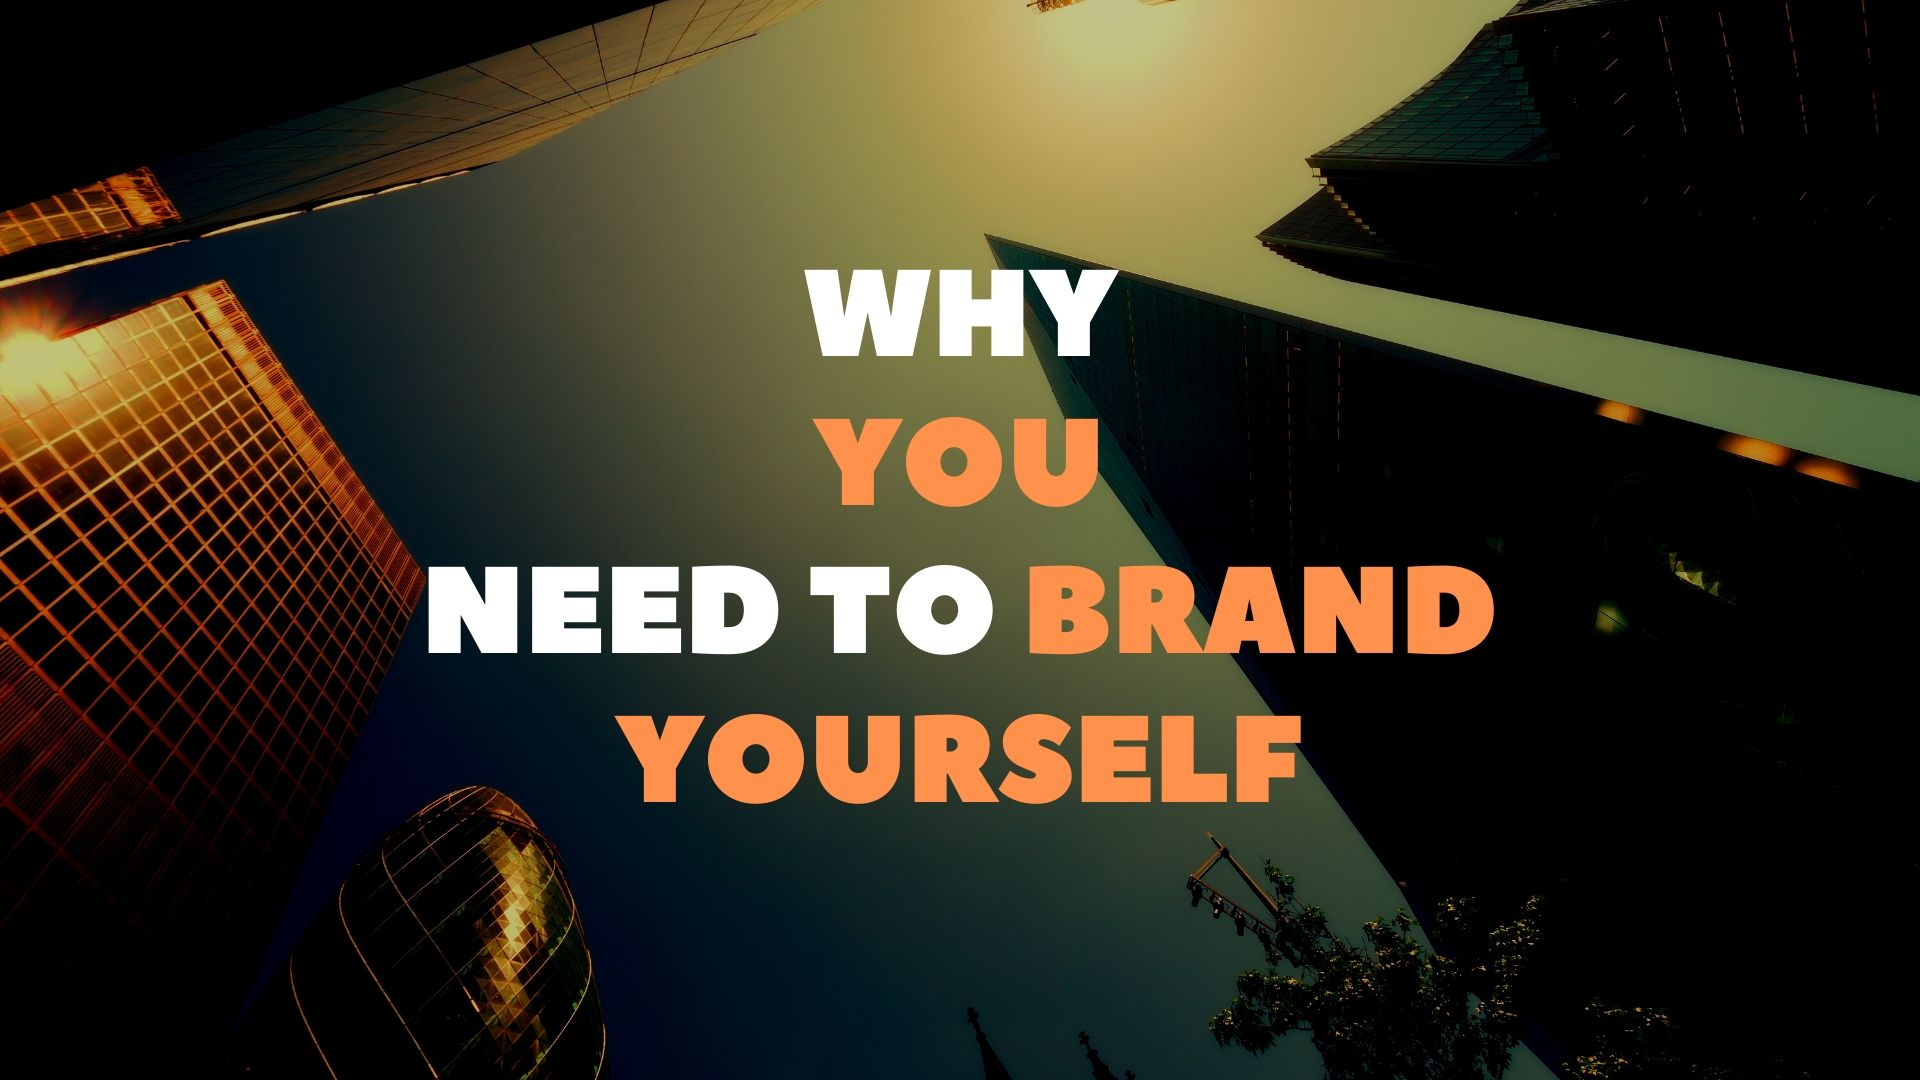 Why you need to brand yourself